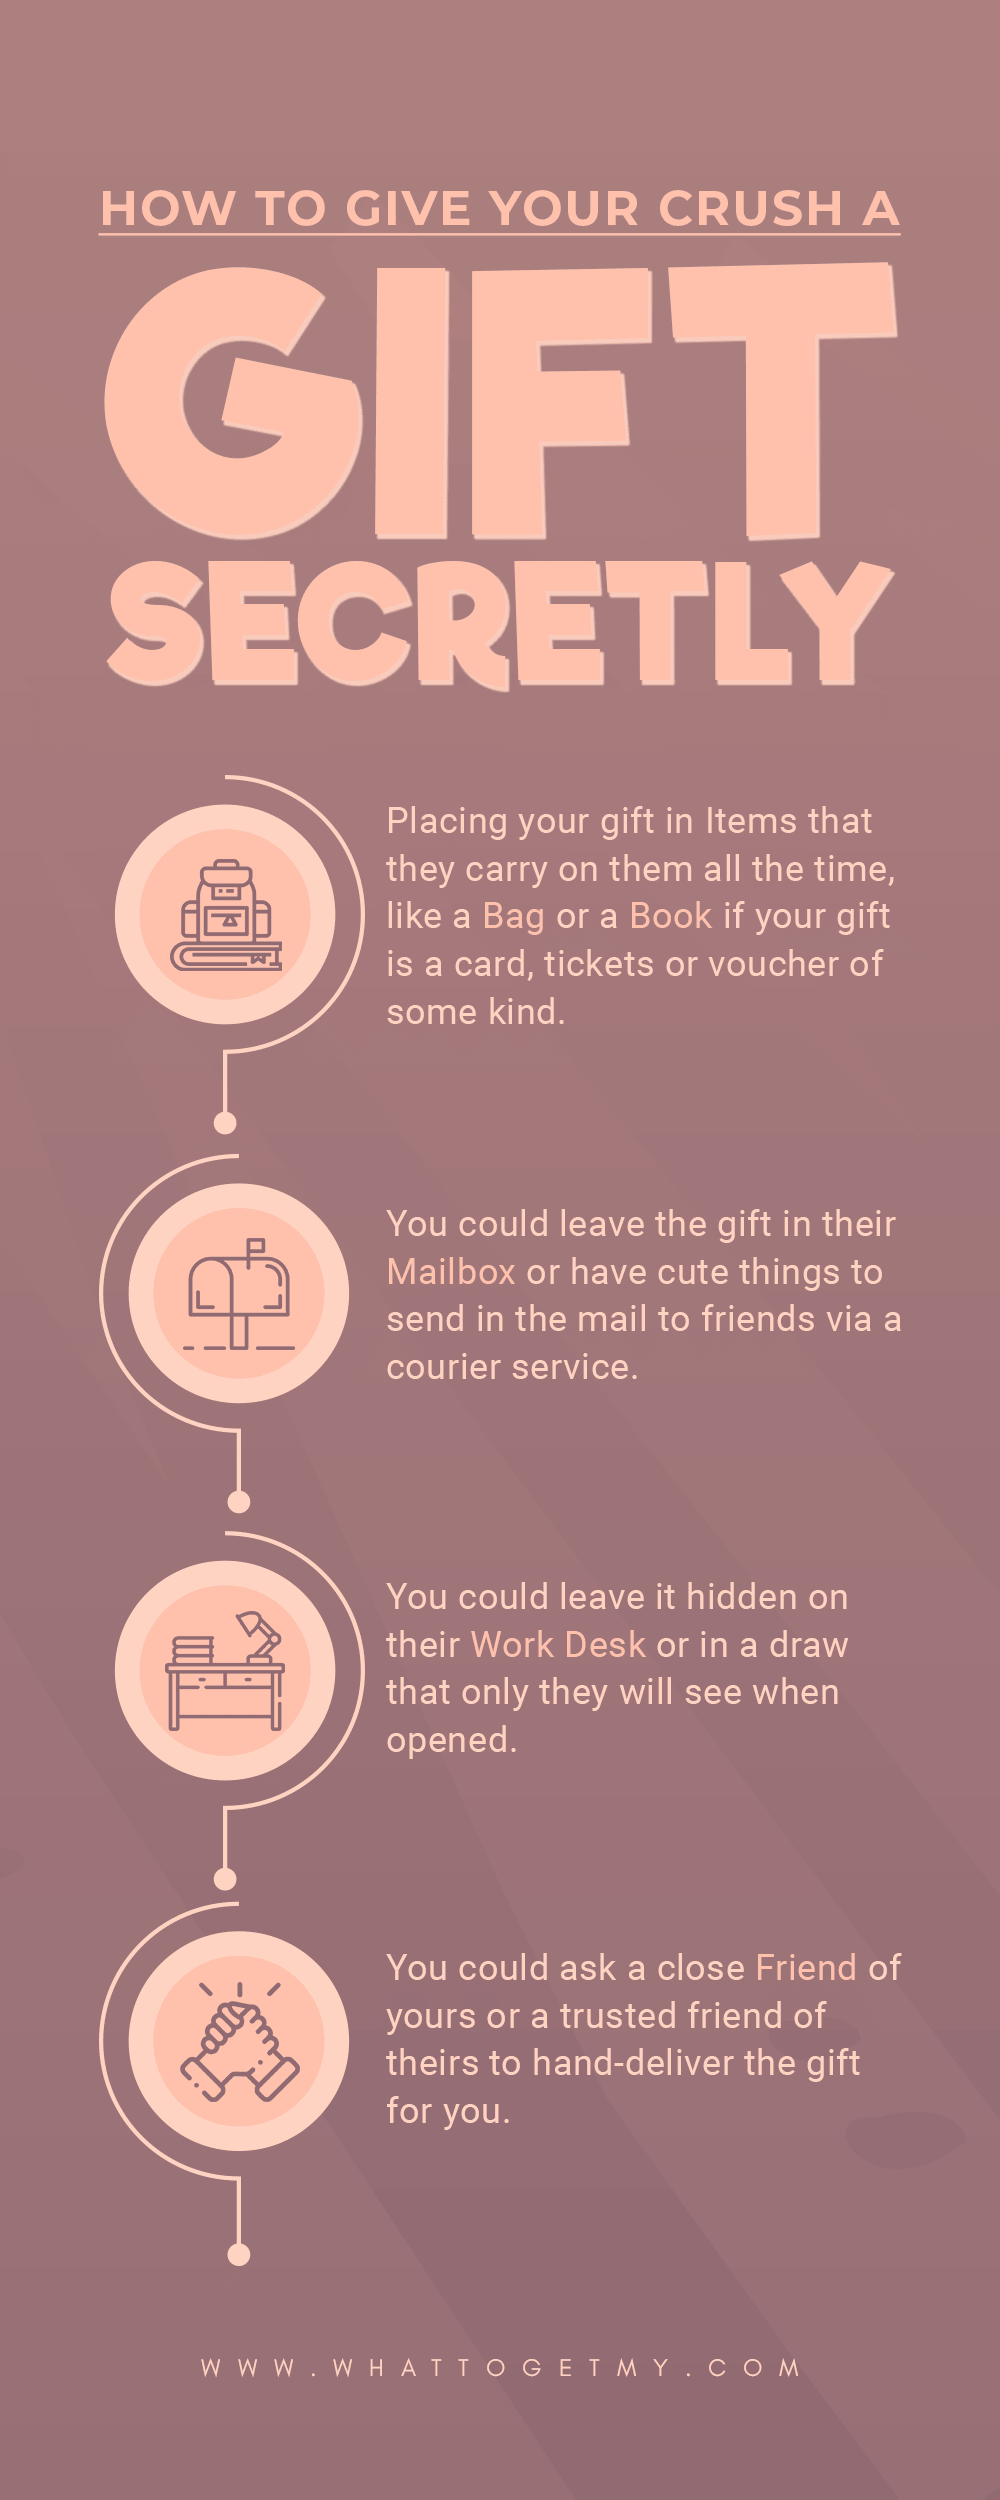 Infographic How to Give Your Crush a Gift Secretly-min